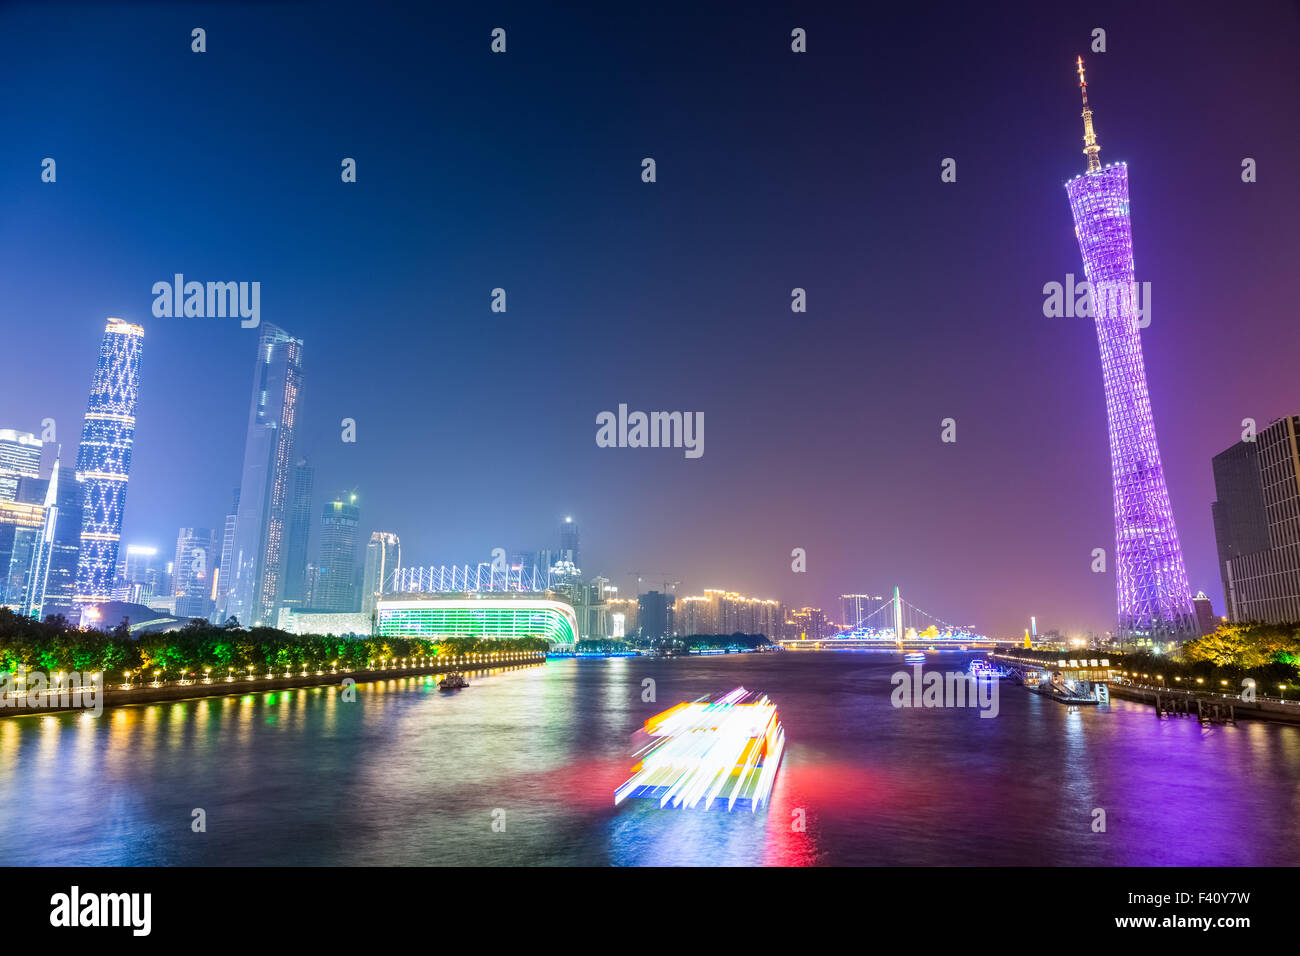 night view of pearl river in guangzhou - Stock Image